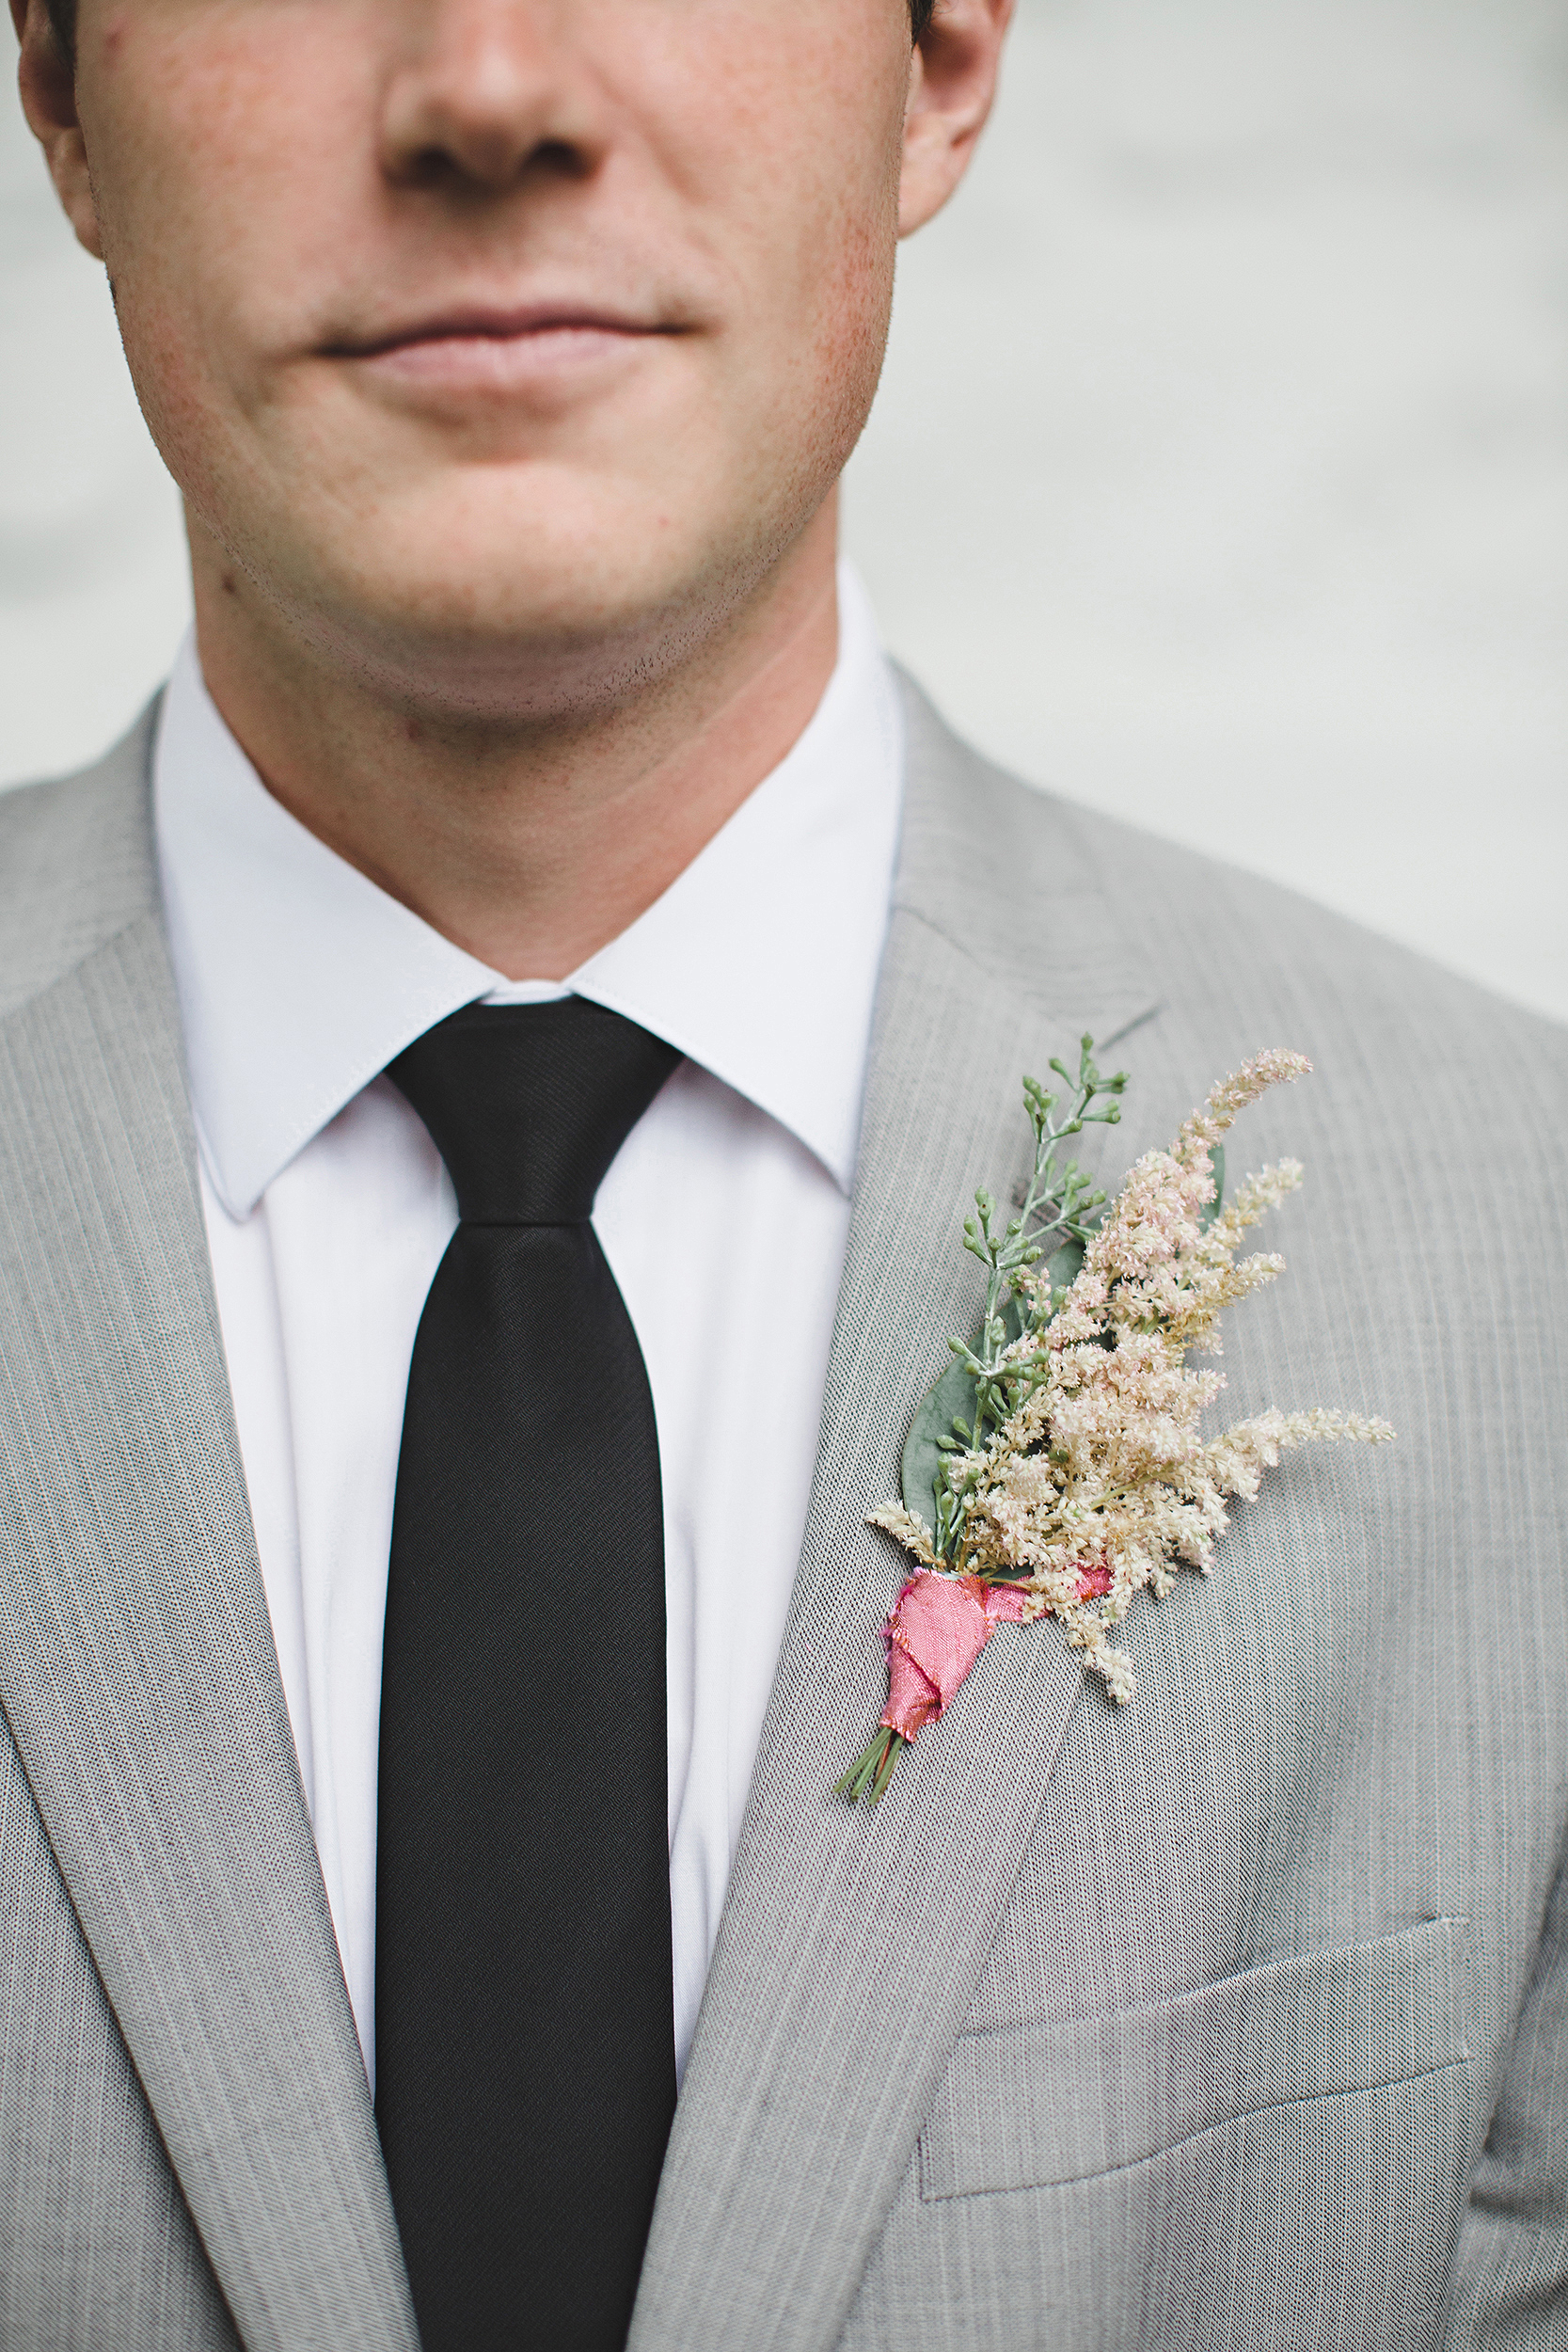 decorative grass boutonniere